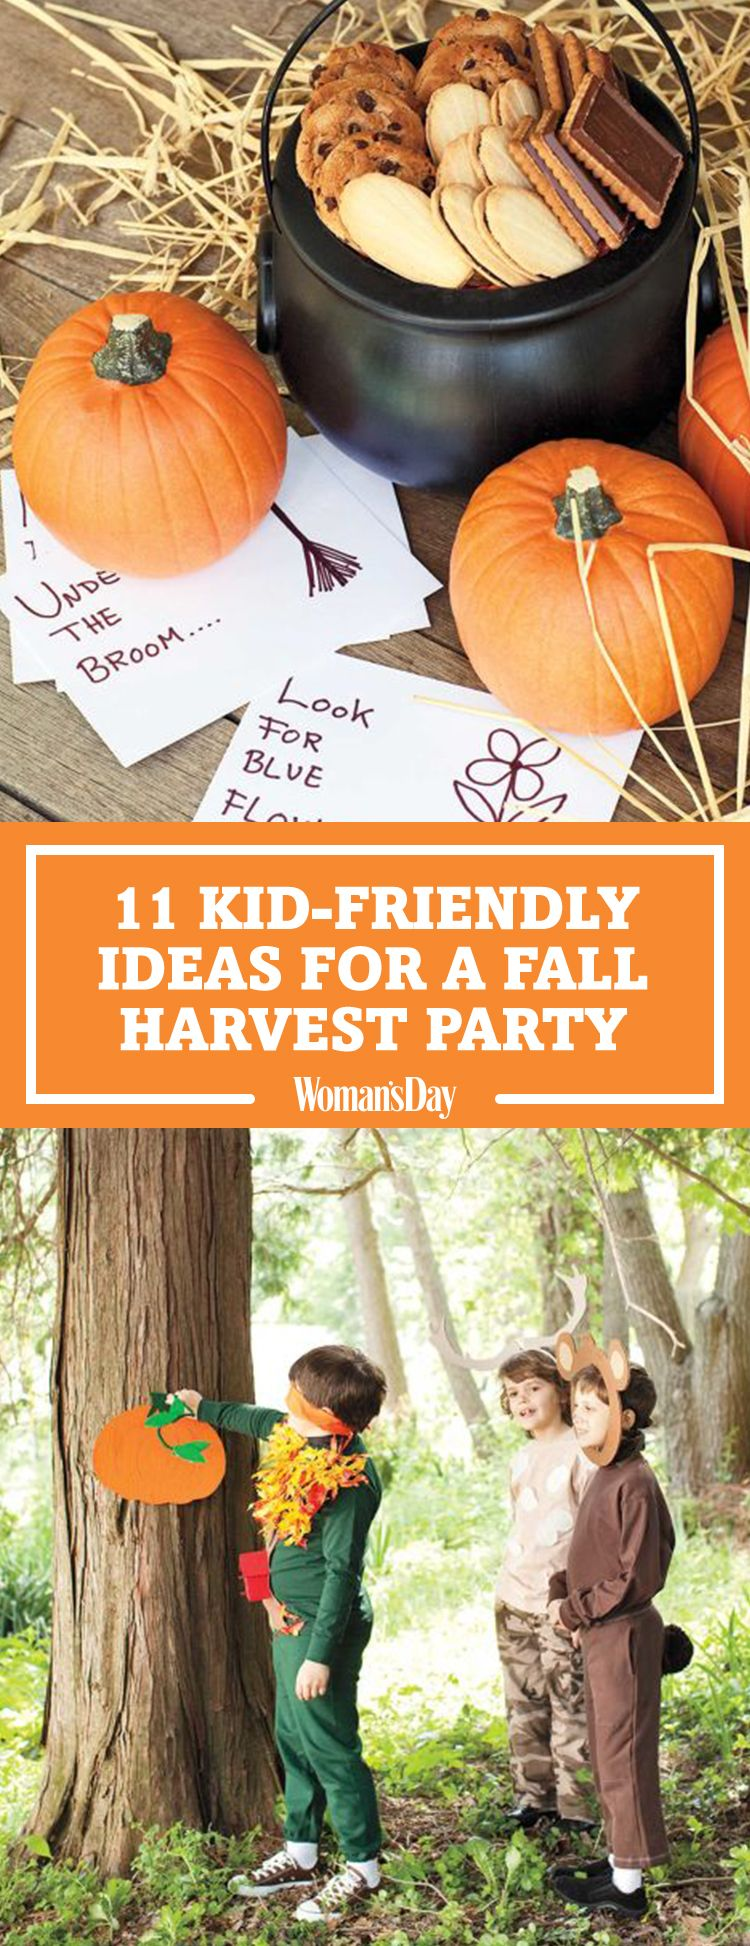 13 Fall Harvest Party Ideas For Kids Autumn Party Food And Decor